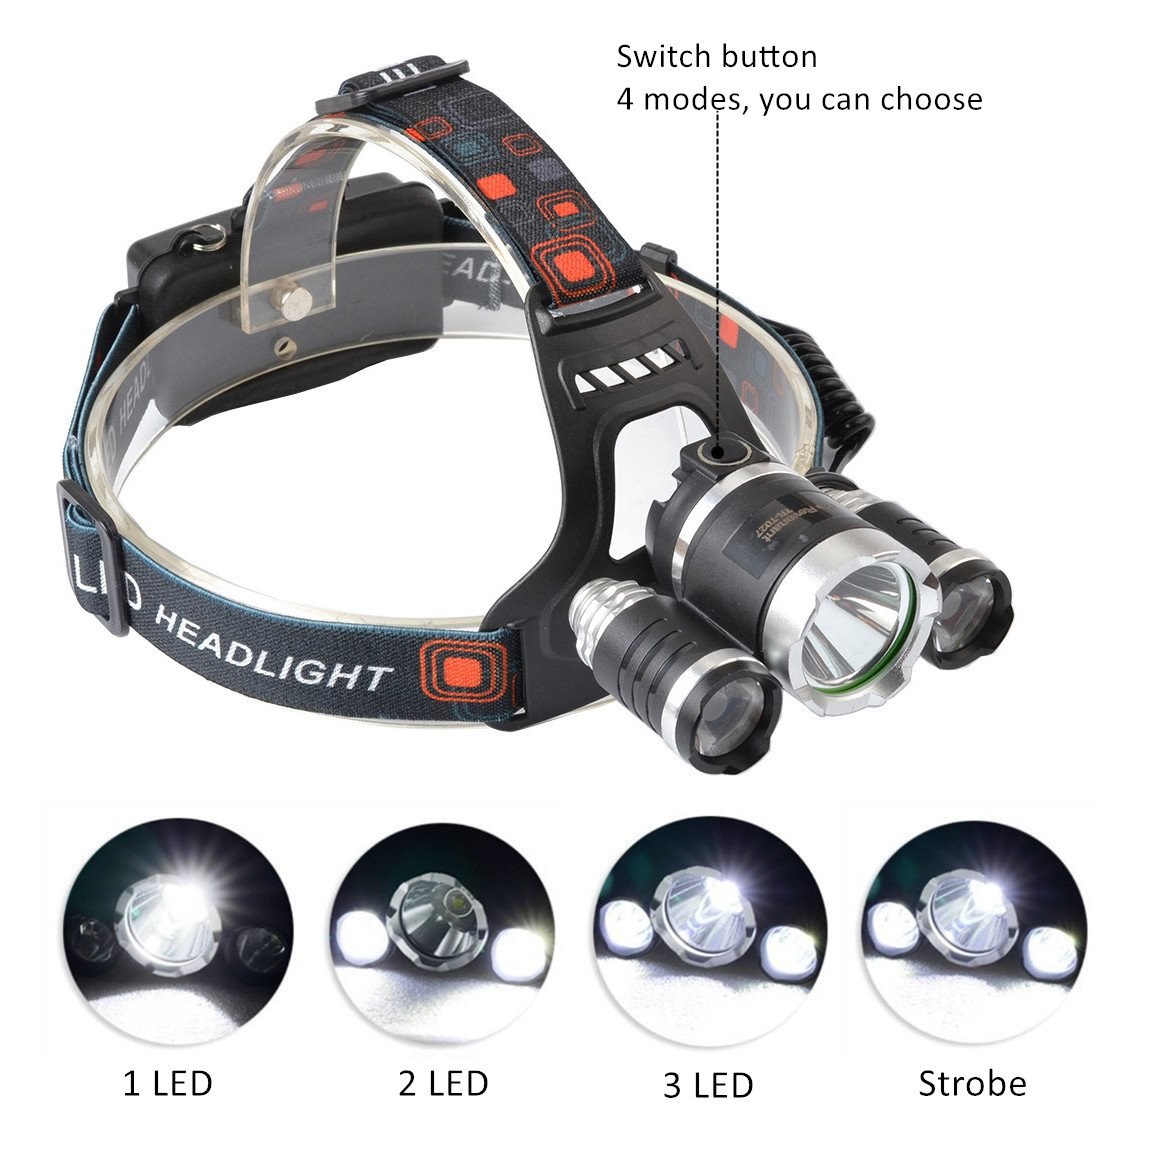 The Revenant Super Bright Led Headlamp 4 Modes 3 Cree Xm L T6 Exciting Scout Crafts 1 Or 2 Waterproof Lightweight Camping Outdoor Sports Headlight